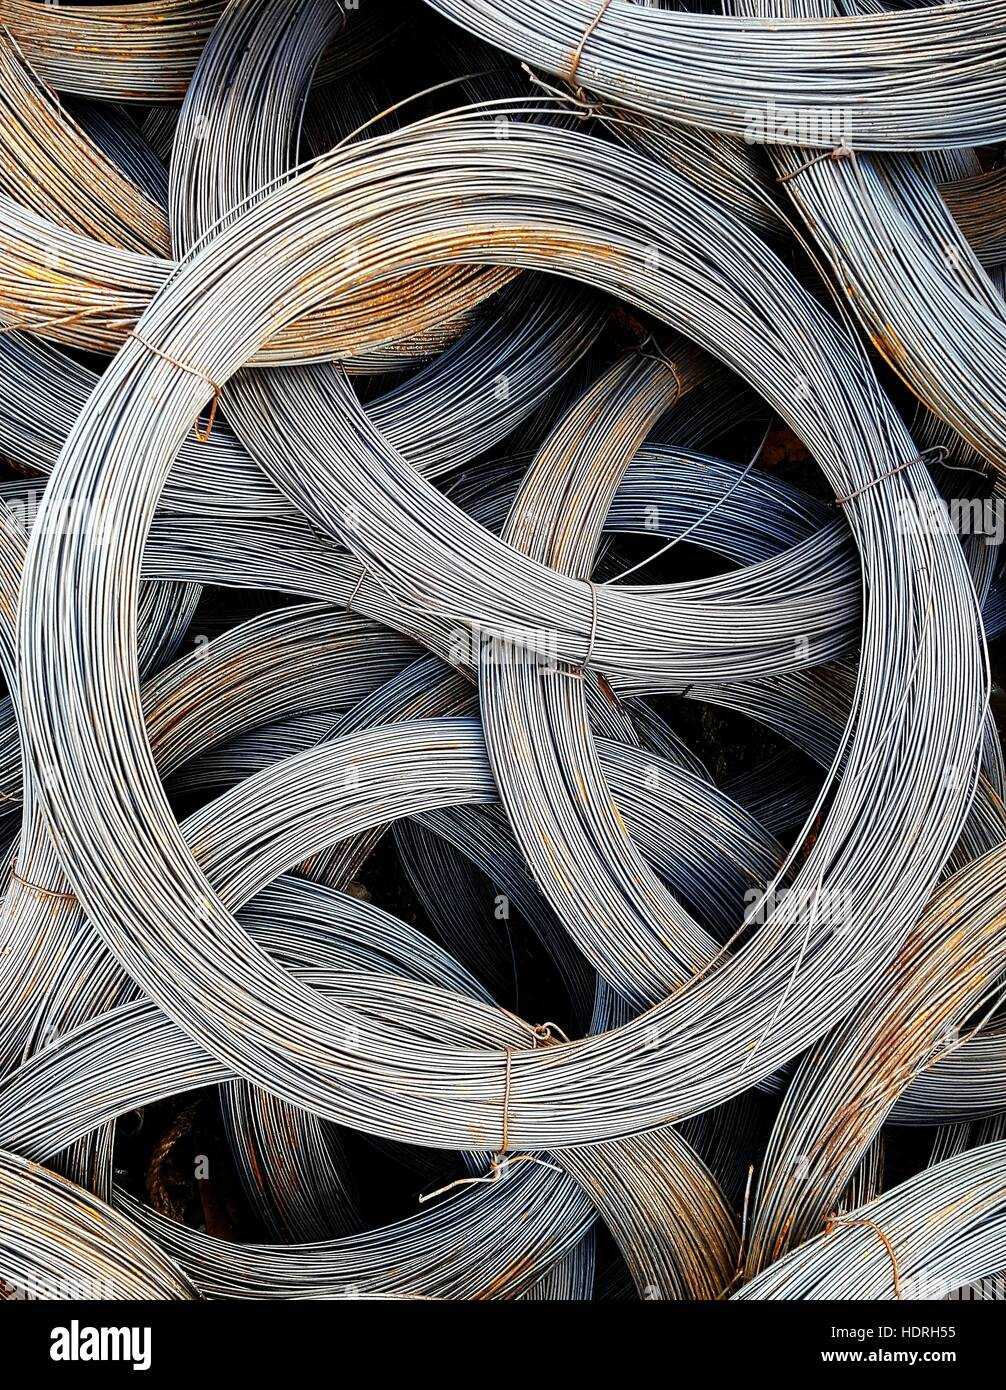 Coils of old galvanized wires with traces of rust - Stock Image